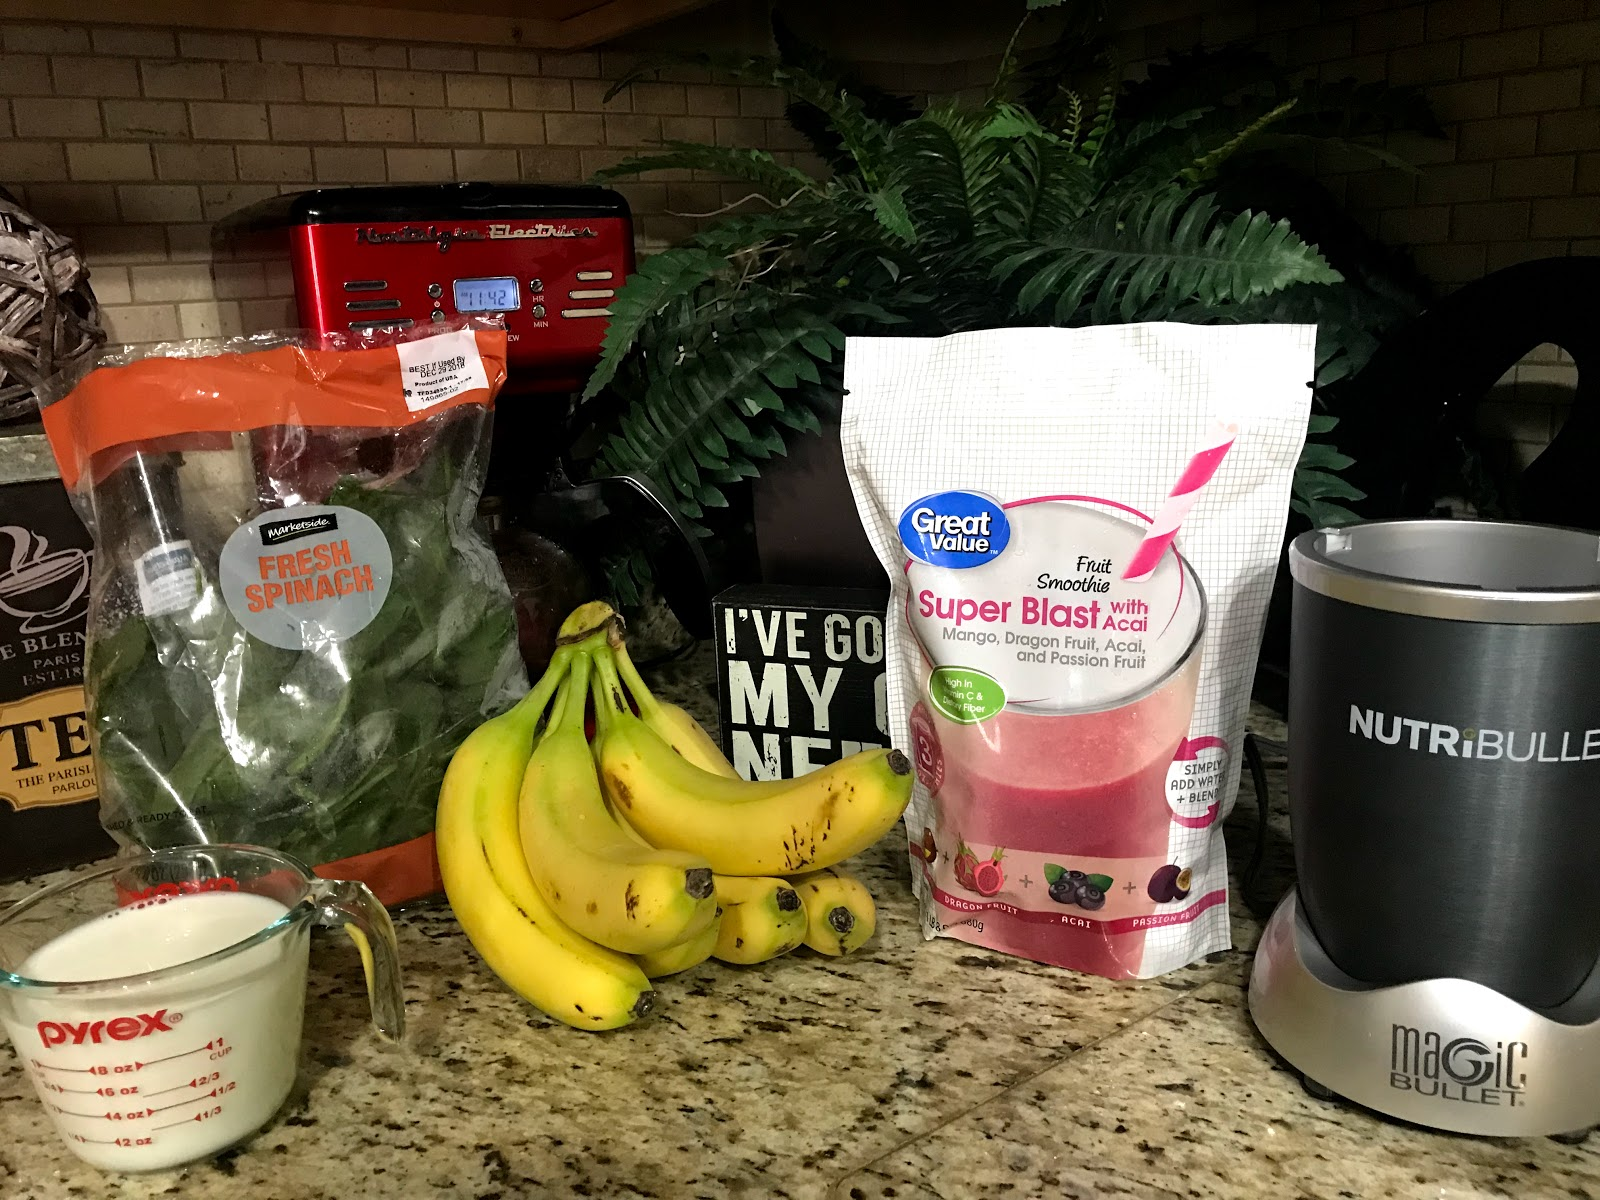 Image: Items used to make breakfast drink: Items Needed:  Any Frozen Fruit: I Chose the individual pre bags. They are easy to use for beginners.   Frozen Spinach: Optional  Bananas, Coconut Milk, Soy, Water or Almond Milk. The choices are limitless.  Honey - I like a natural bit of sweetness.